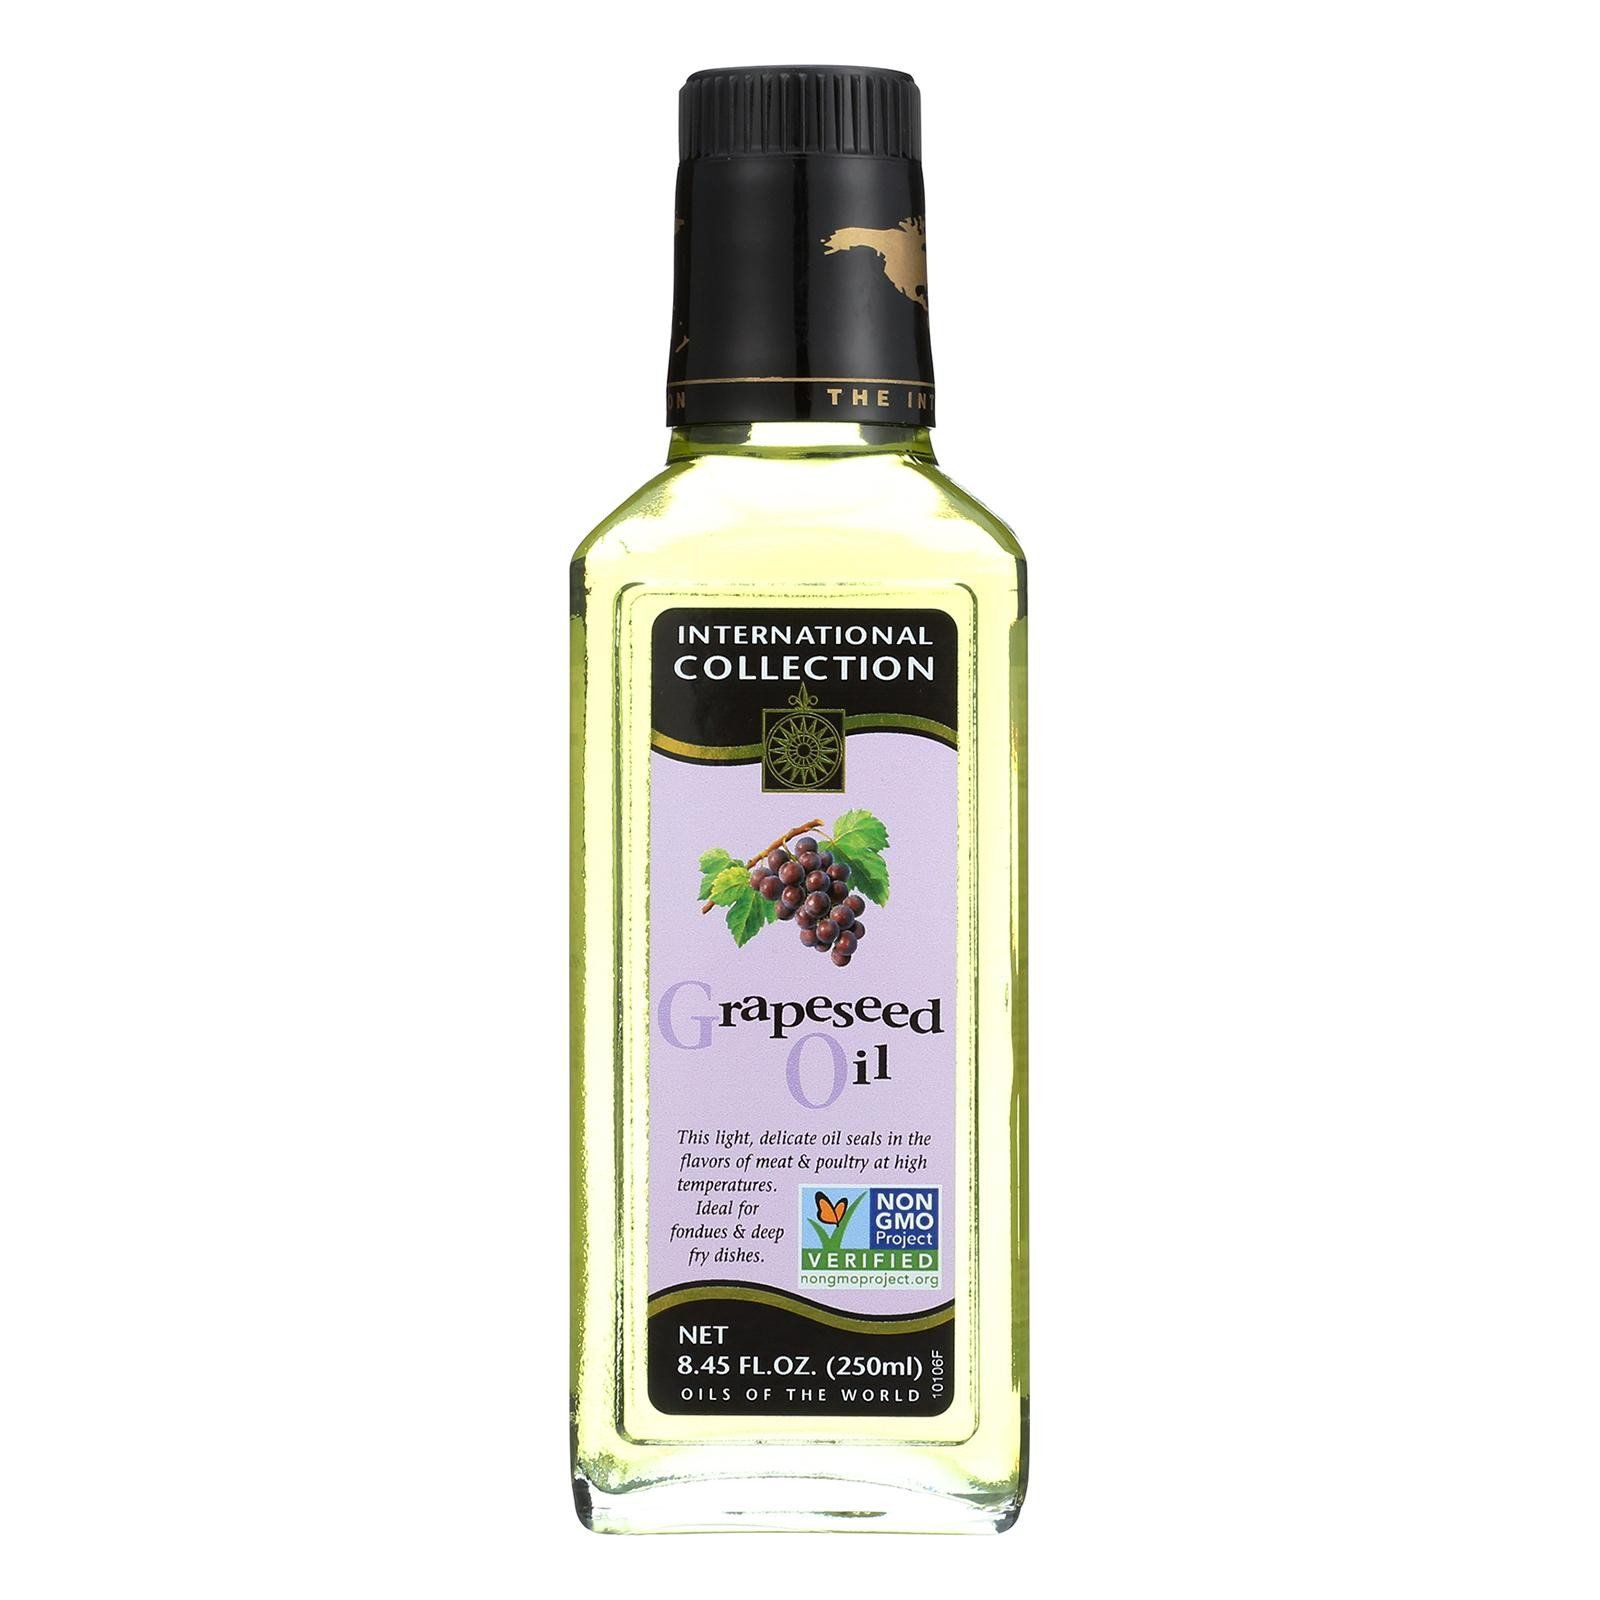 International Collection Grapeseed Oil Case Of 6 8.45